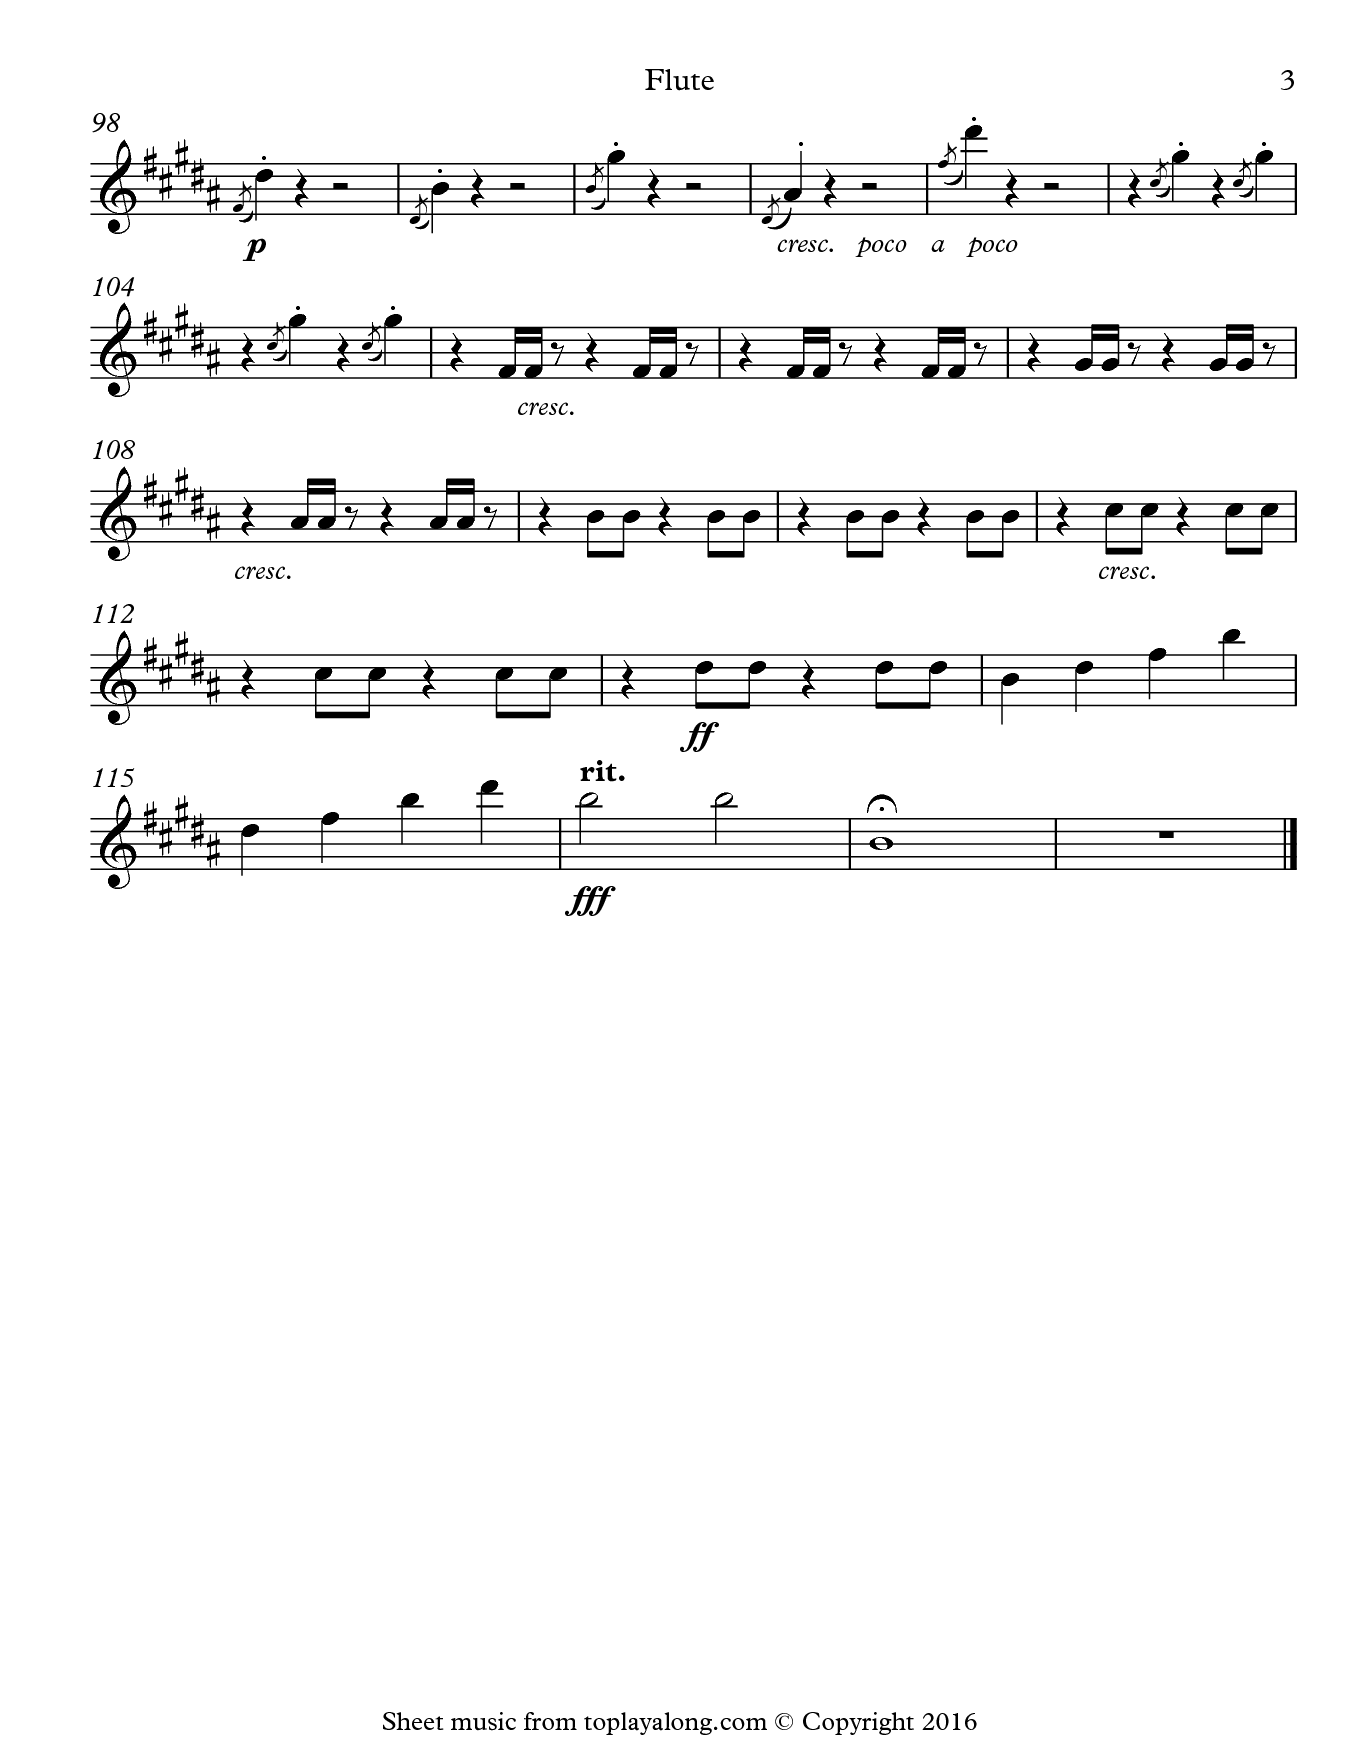 Swan Lake Finale by Tchaikovsky. Sheet music for Flute, page 3.